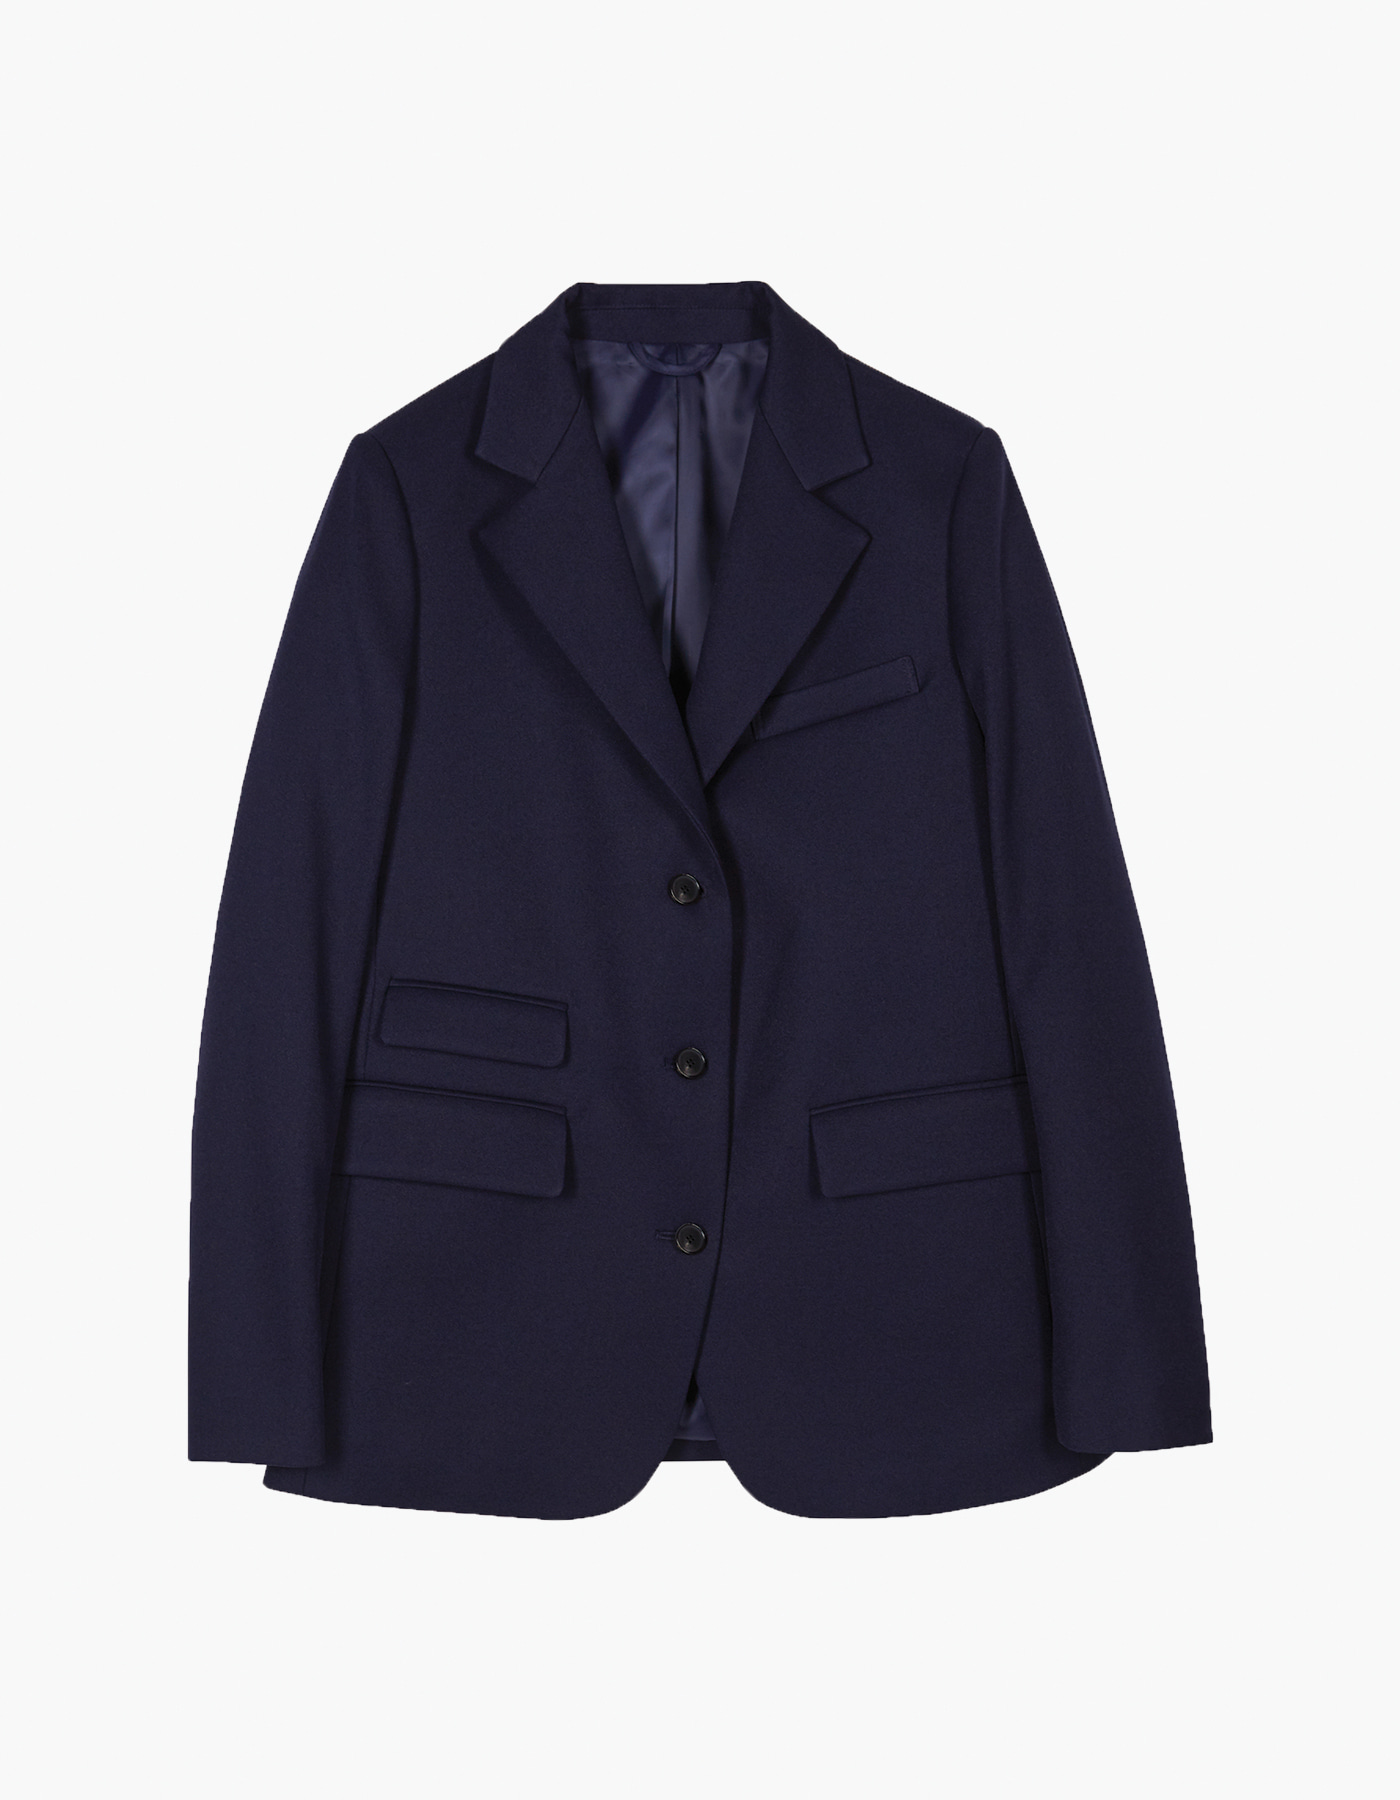 SARTORIA JUN TECHNIQUE X HERITAGEFLOSS BLAZER (W) / NAVY